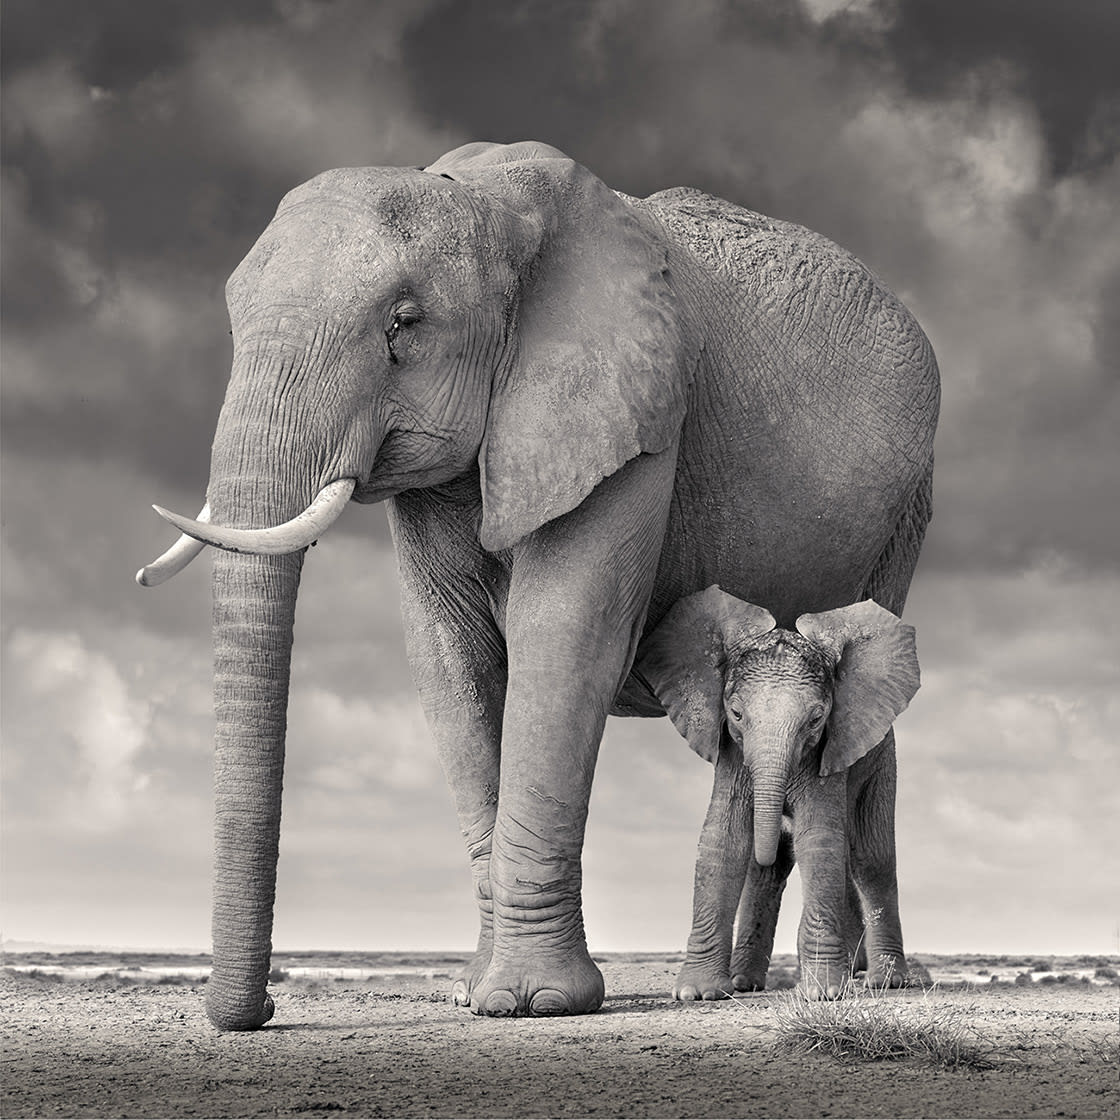 Elephant Mother and Calf, Amboseli, 2020 - David Burdeny at Kostuik Gallery